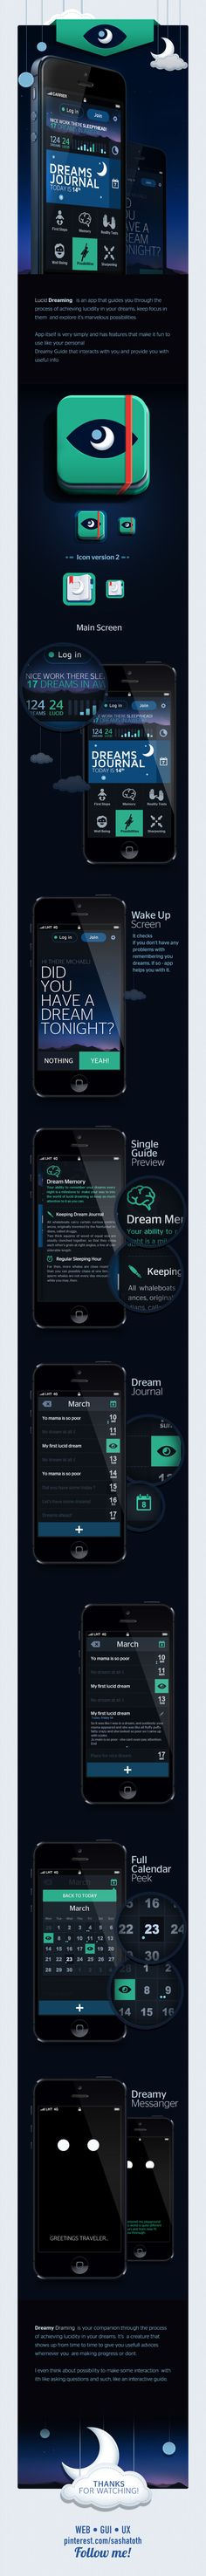 Lucid Dreaming APP by Michał Sambora, via Behance ••• iOS/Android app with dream journal and guides to achieve lucid dreams • #iphone #gui #andorid, BTW Download cool app(s) here: http://www.imobileappsys.com/promote/tryapps.php?id=pinterest